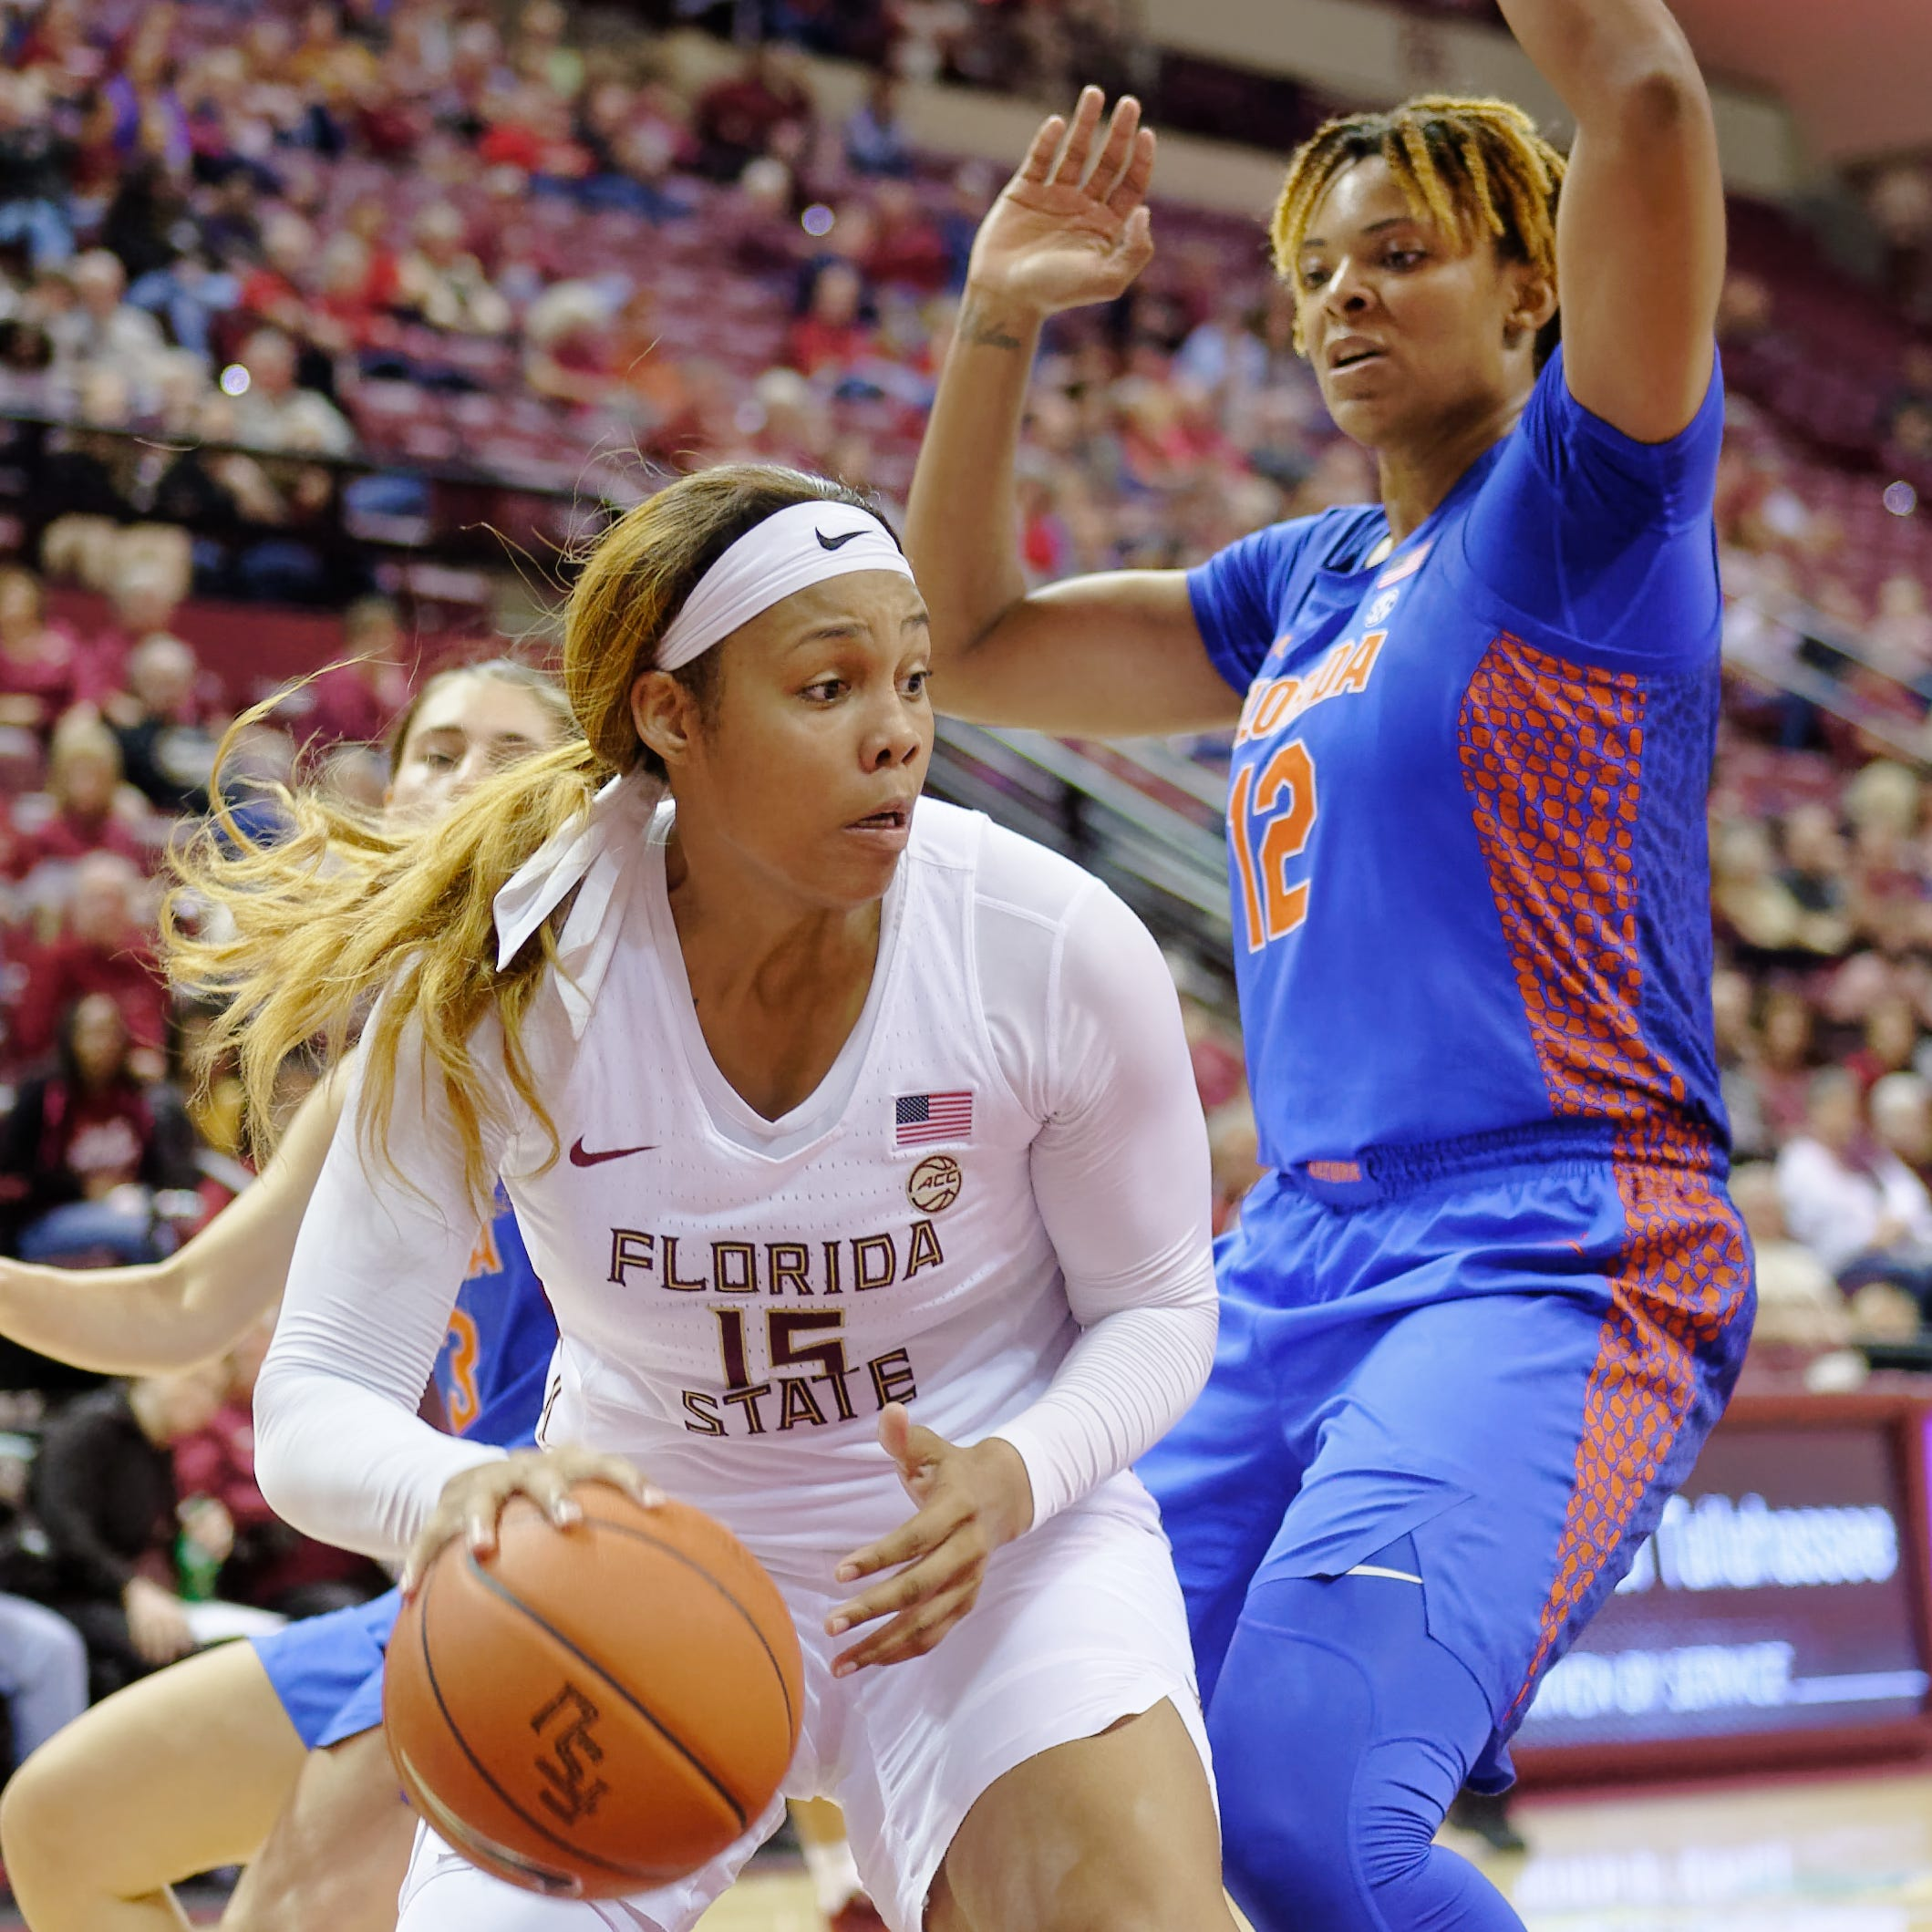 Florida State transfer Gillespie makes the most of her 'second chance'